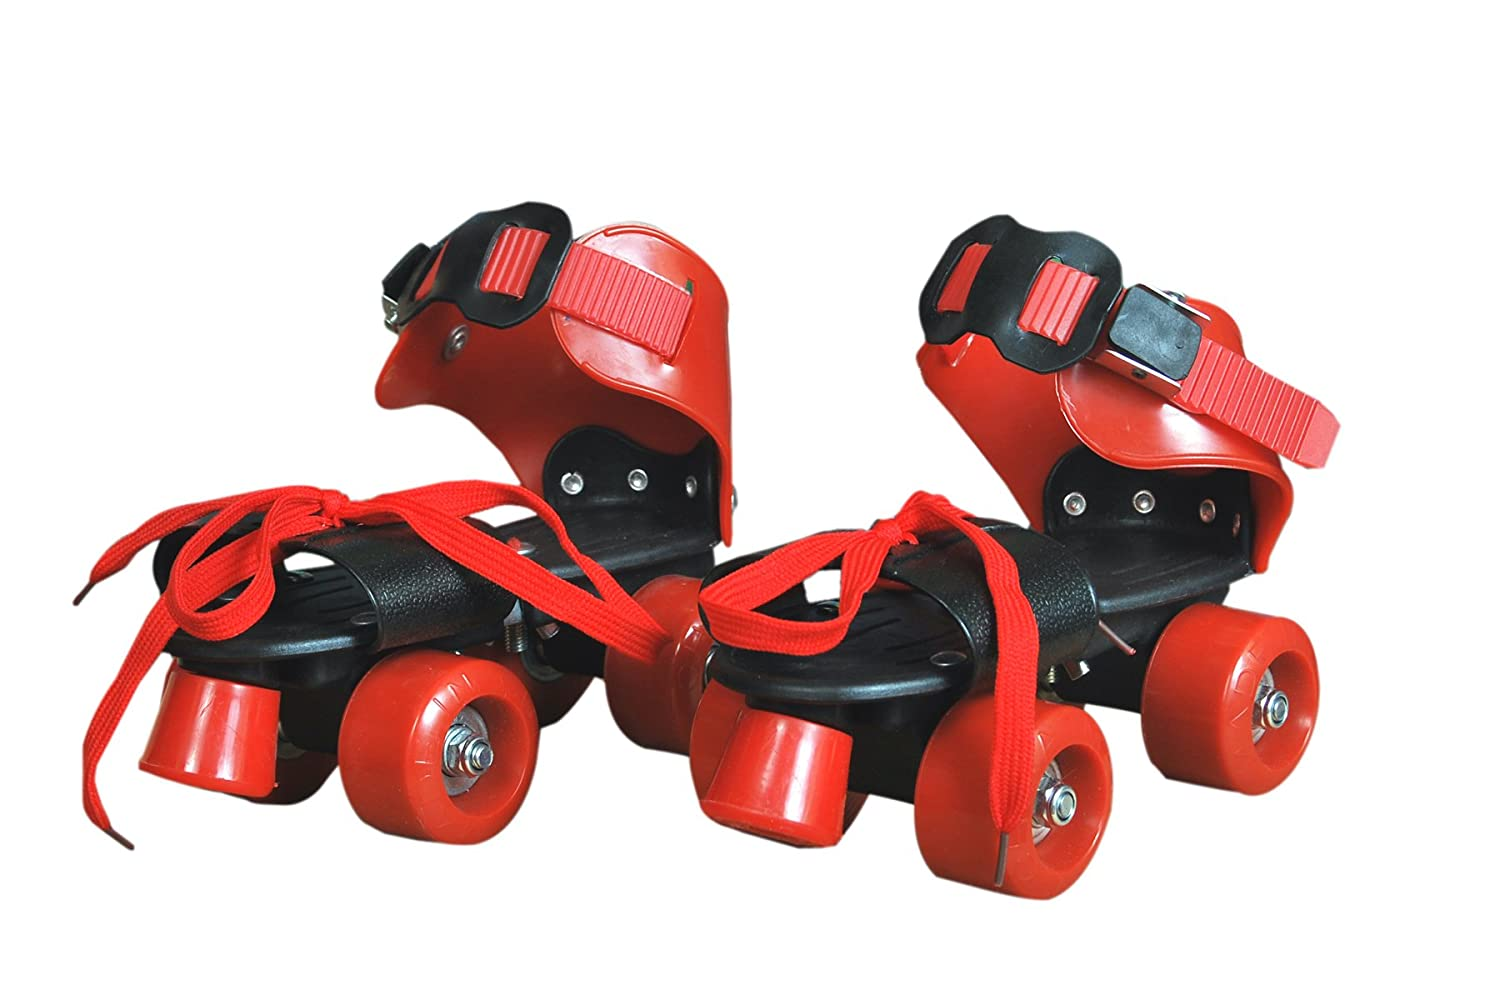 Roller skate shoes au